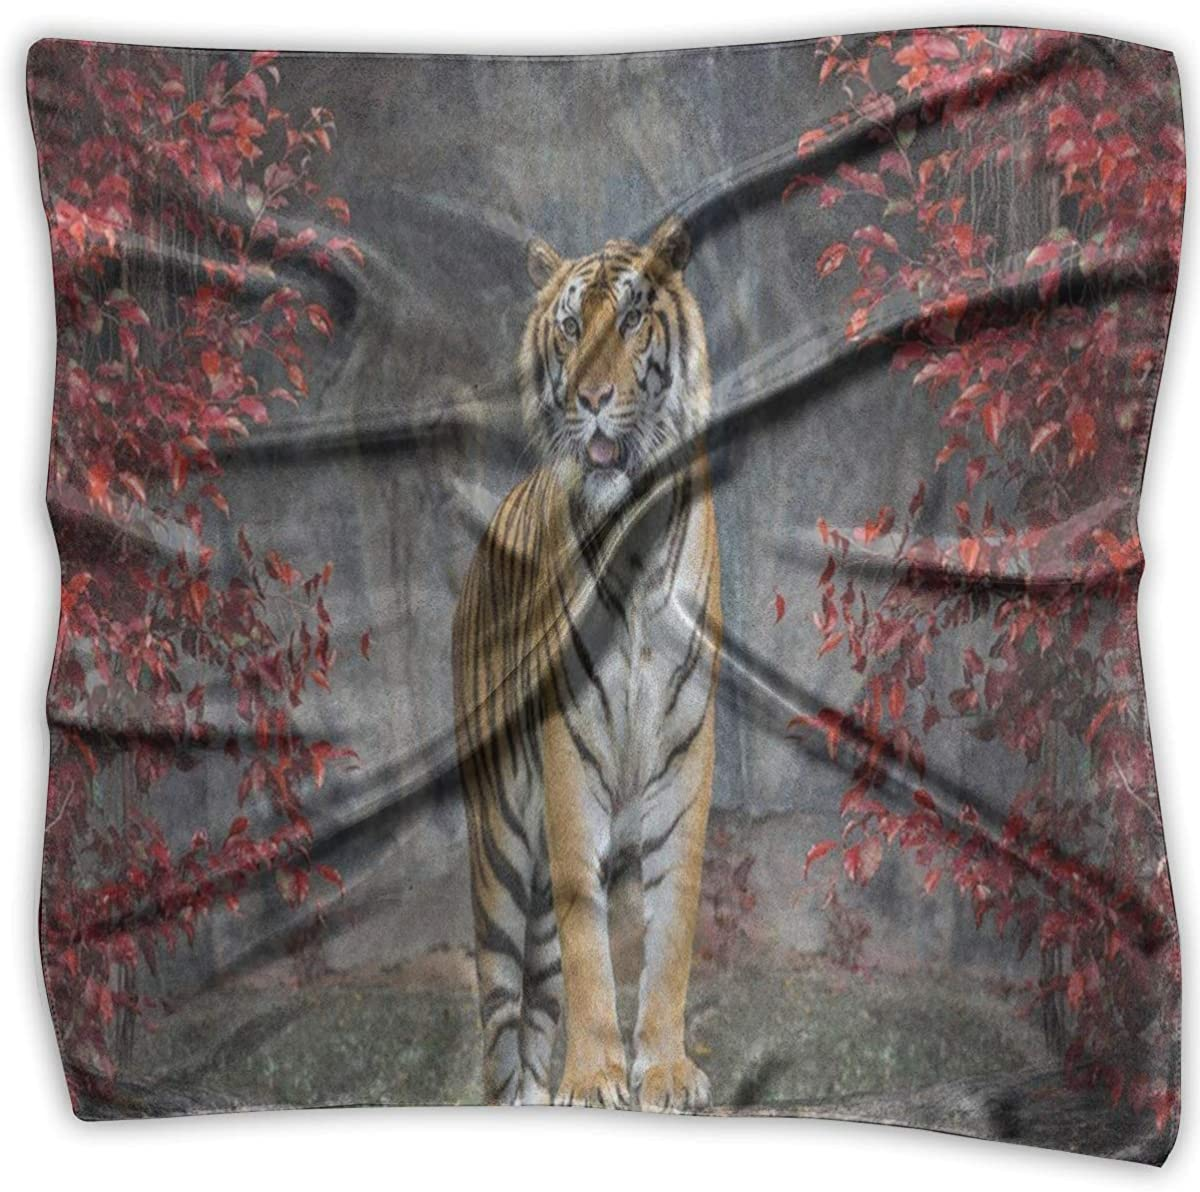 Womens Silk Scarf Blue And Red Fiery Dragon Printed Square Scarf Sunscreen Shawls 23.6 X 23.6